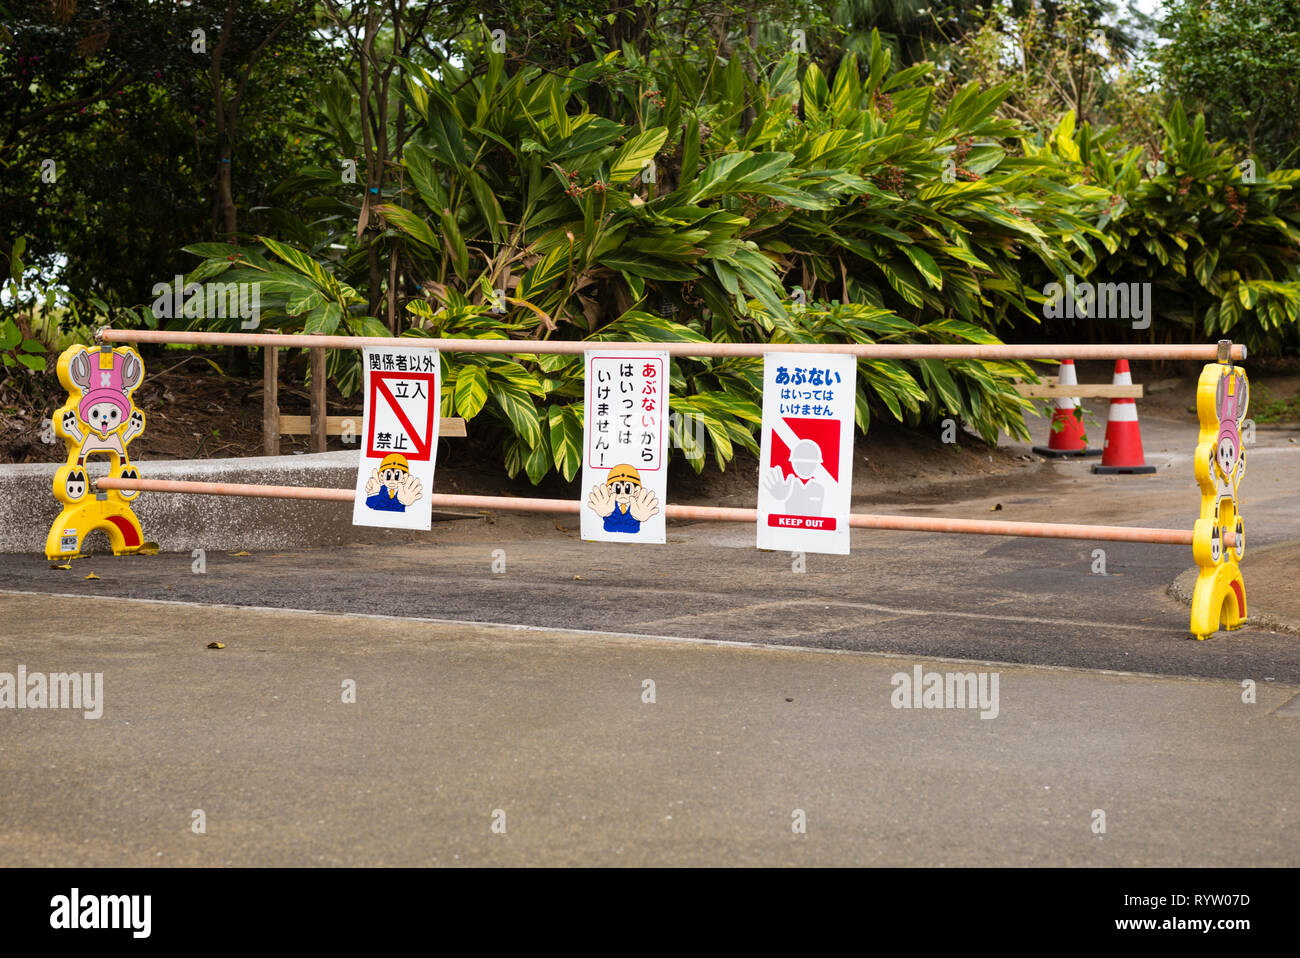 Construction site roadblock with anime characters, Japan - Stock Image